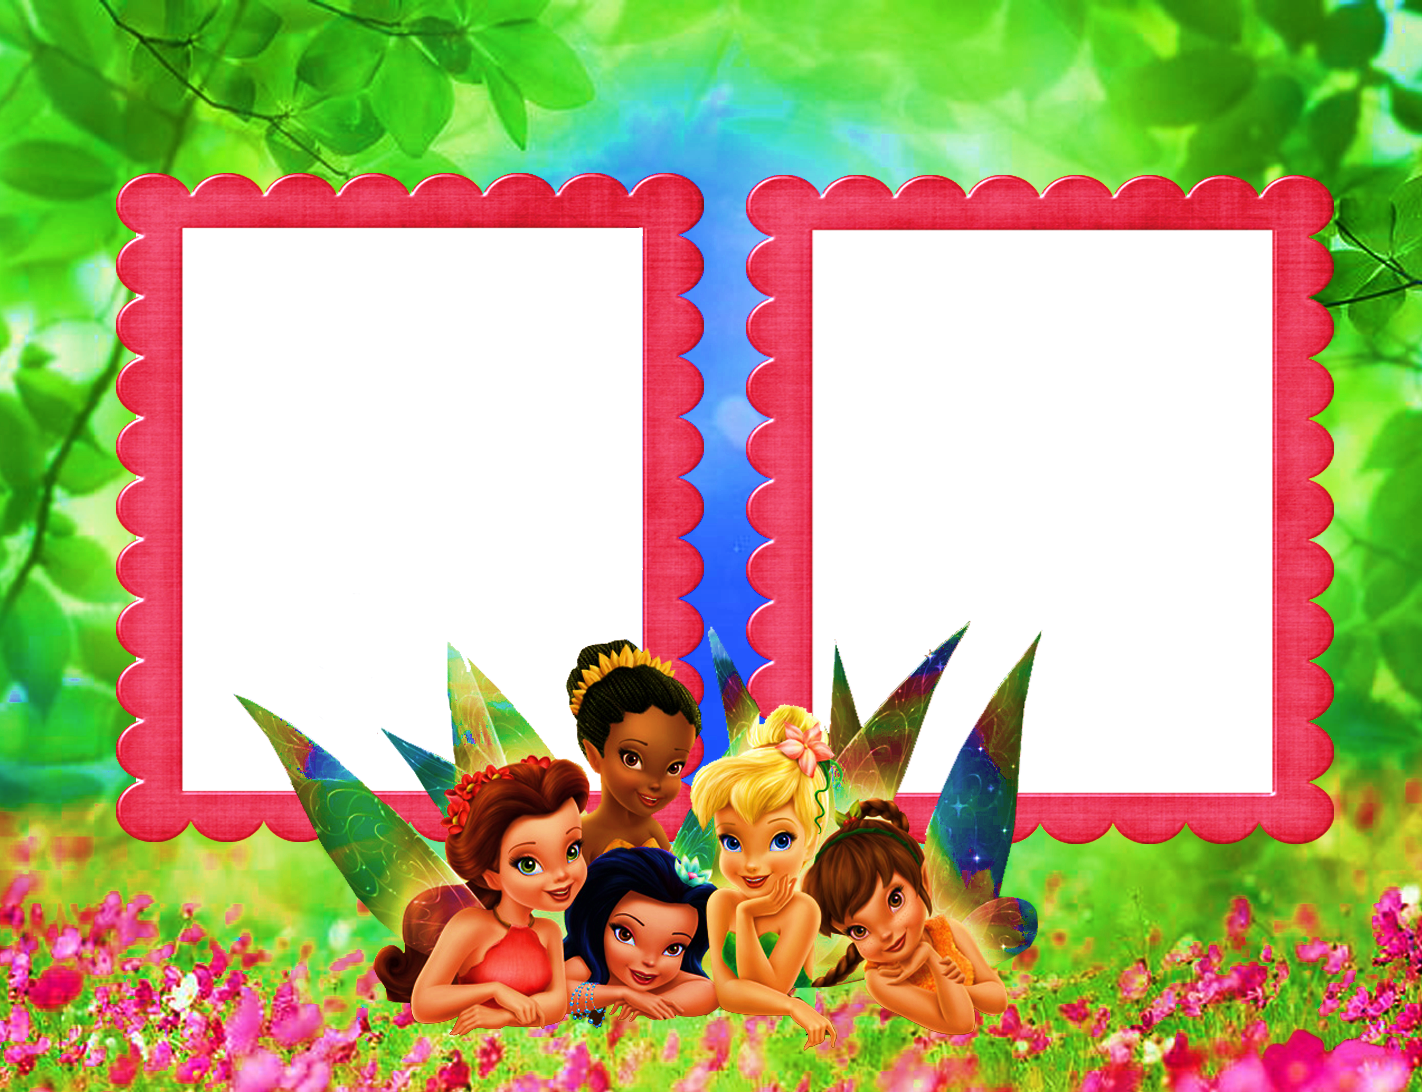 Fairy Frame Transparent Tinkerbell Fairies Tinkerbell Printable Stationery